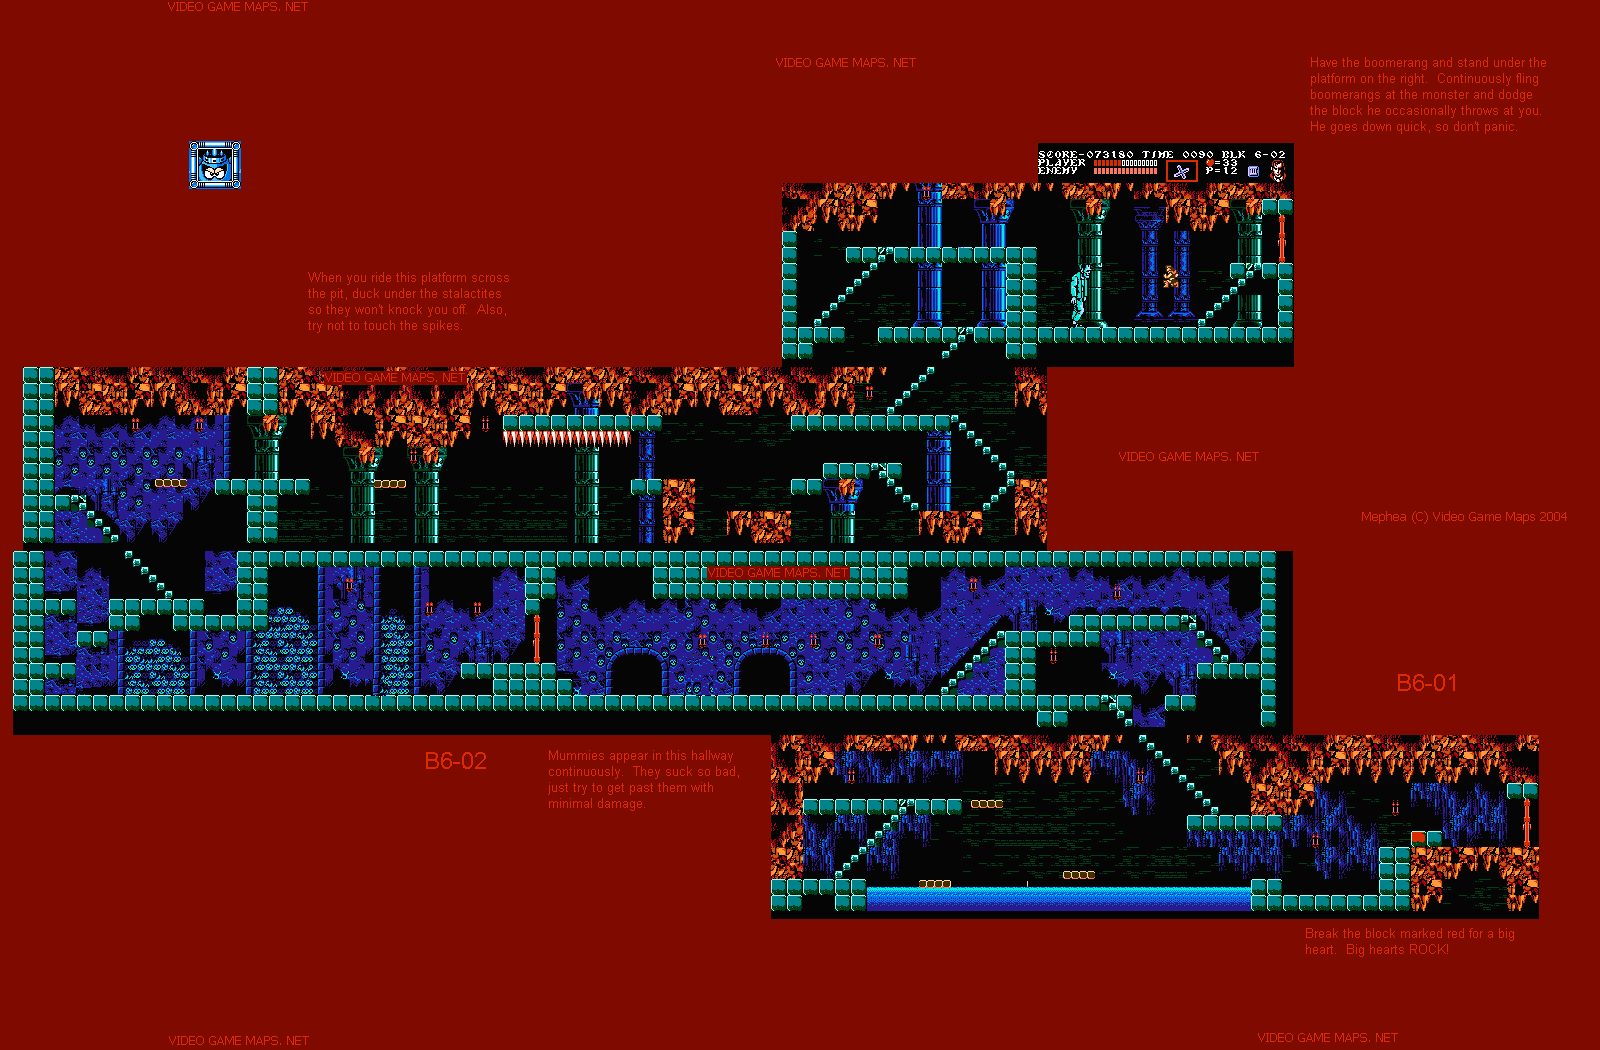 Castlevania World Map.Vgm Maps And Strategies